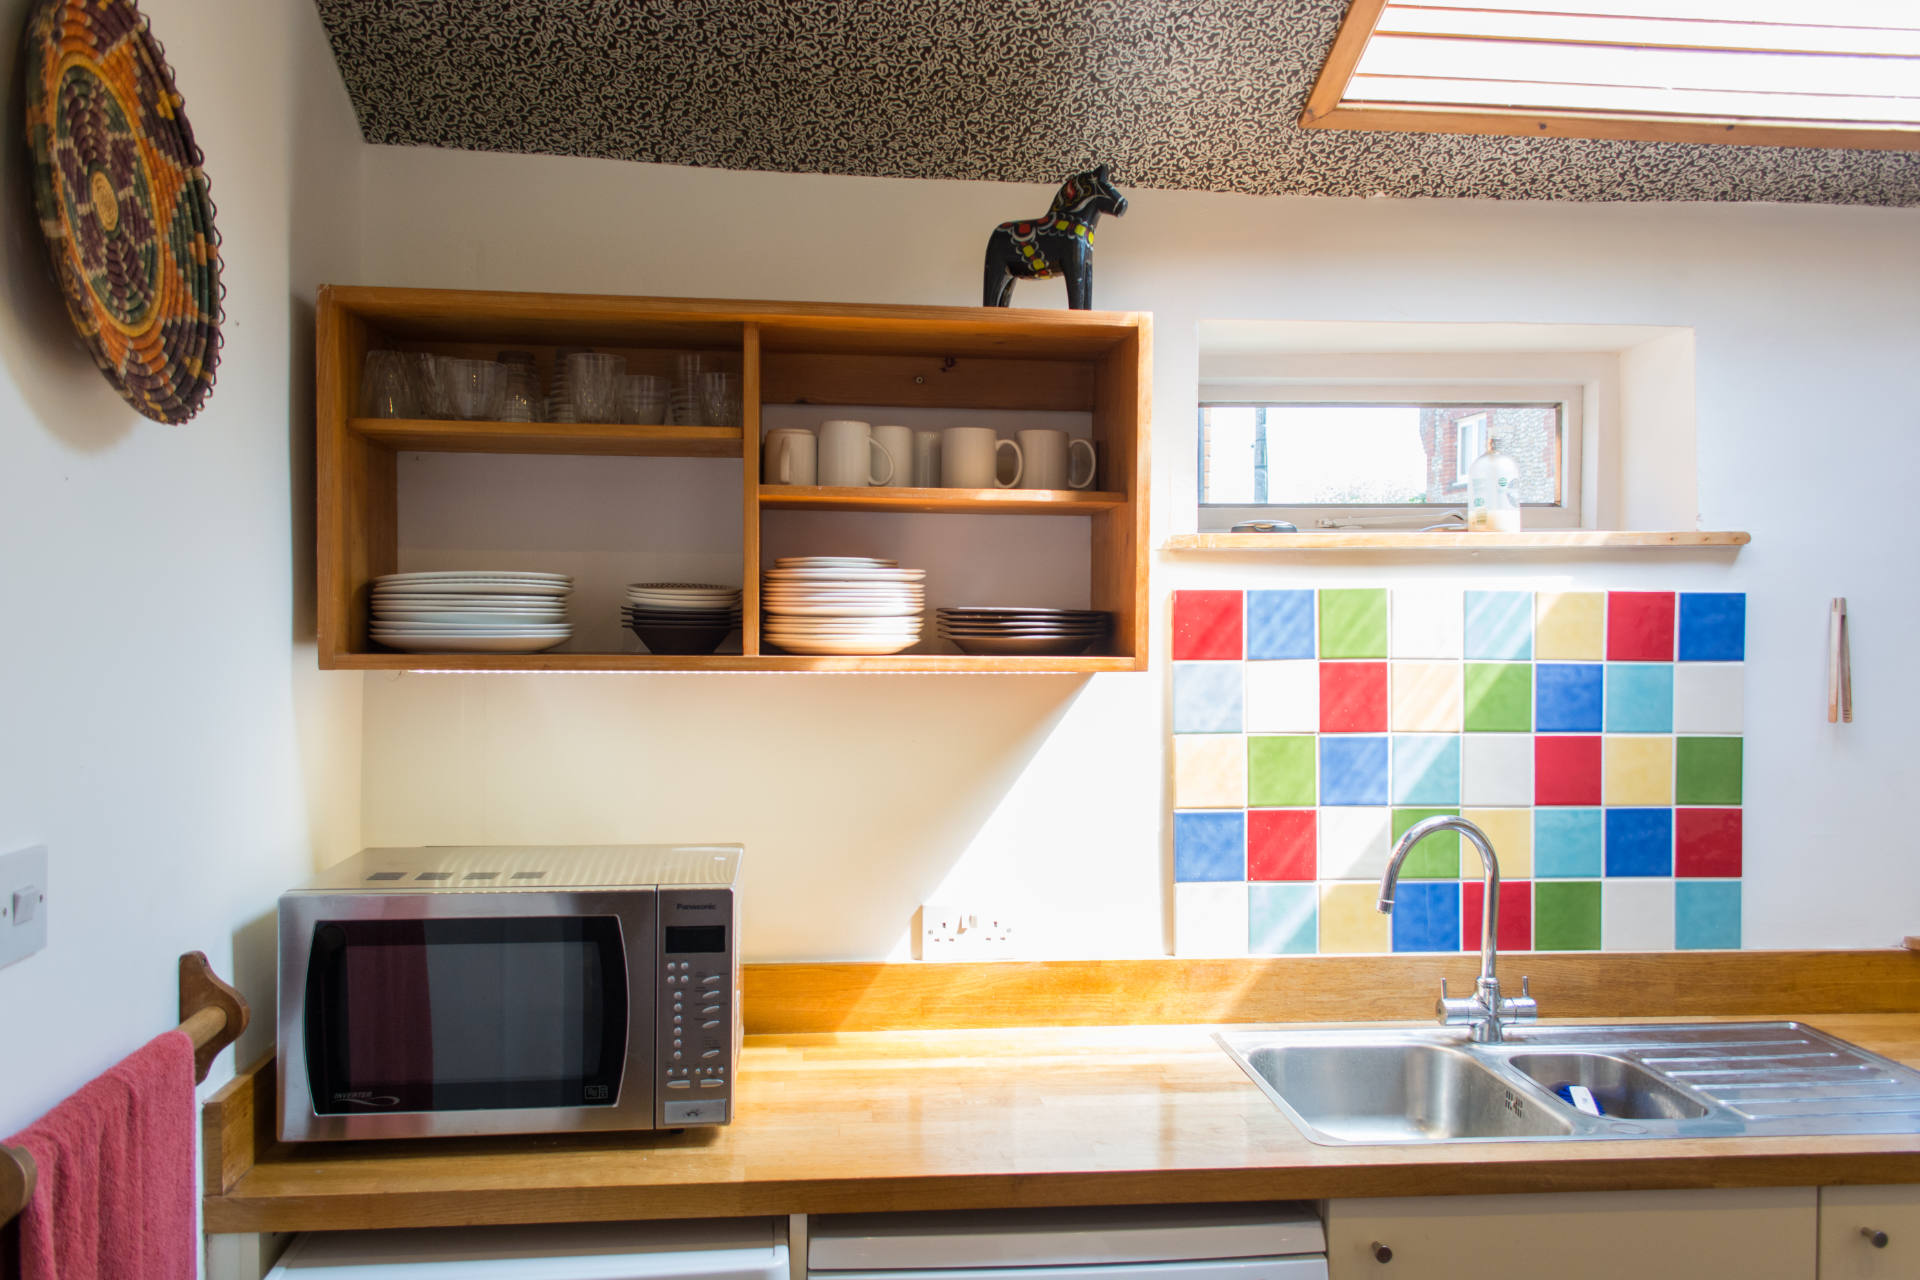 Salthouse holiday home kitchen and microwave.